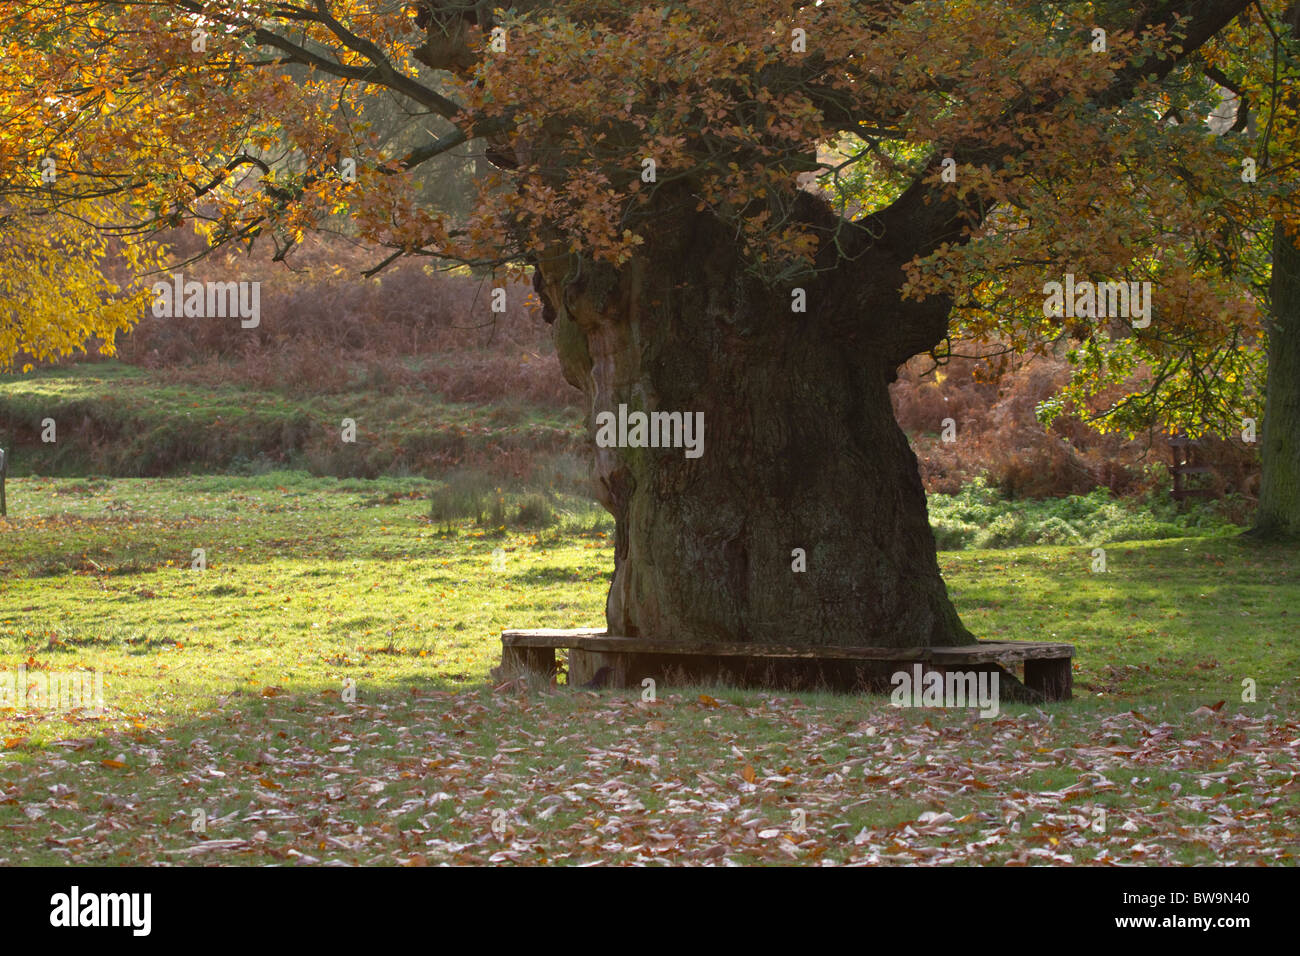 Bradgate Park; Leicestershire; old oak tree - Stock Image